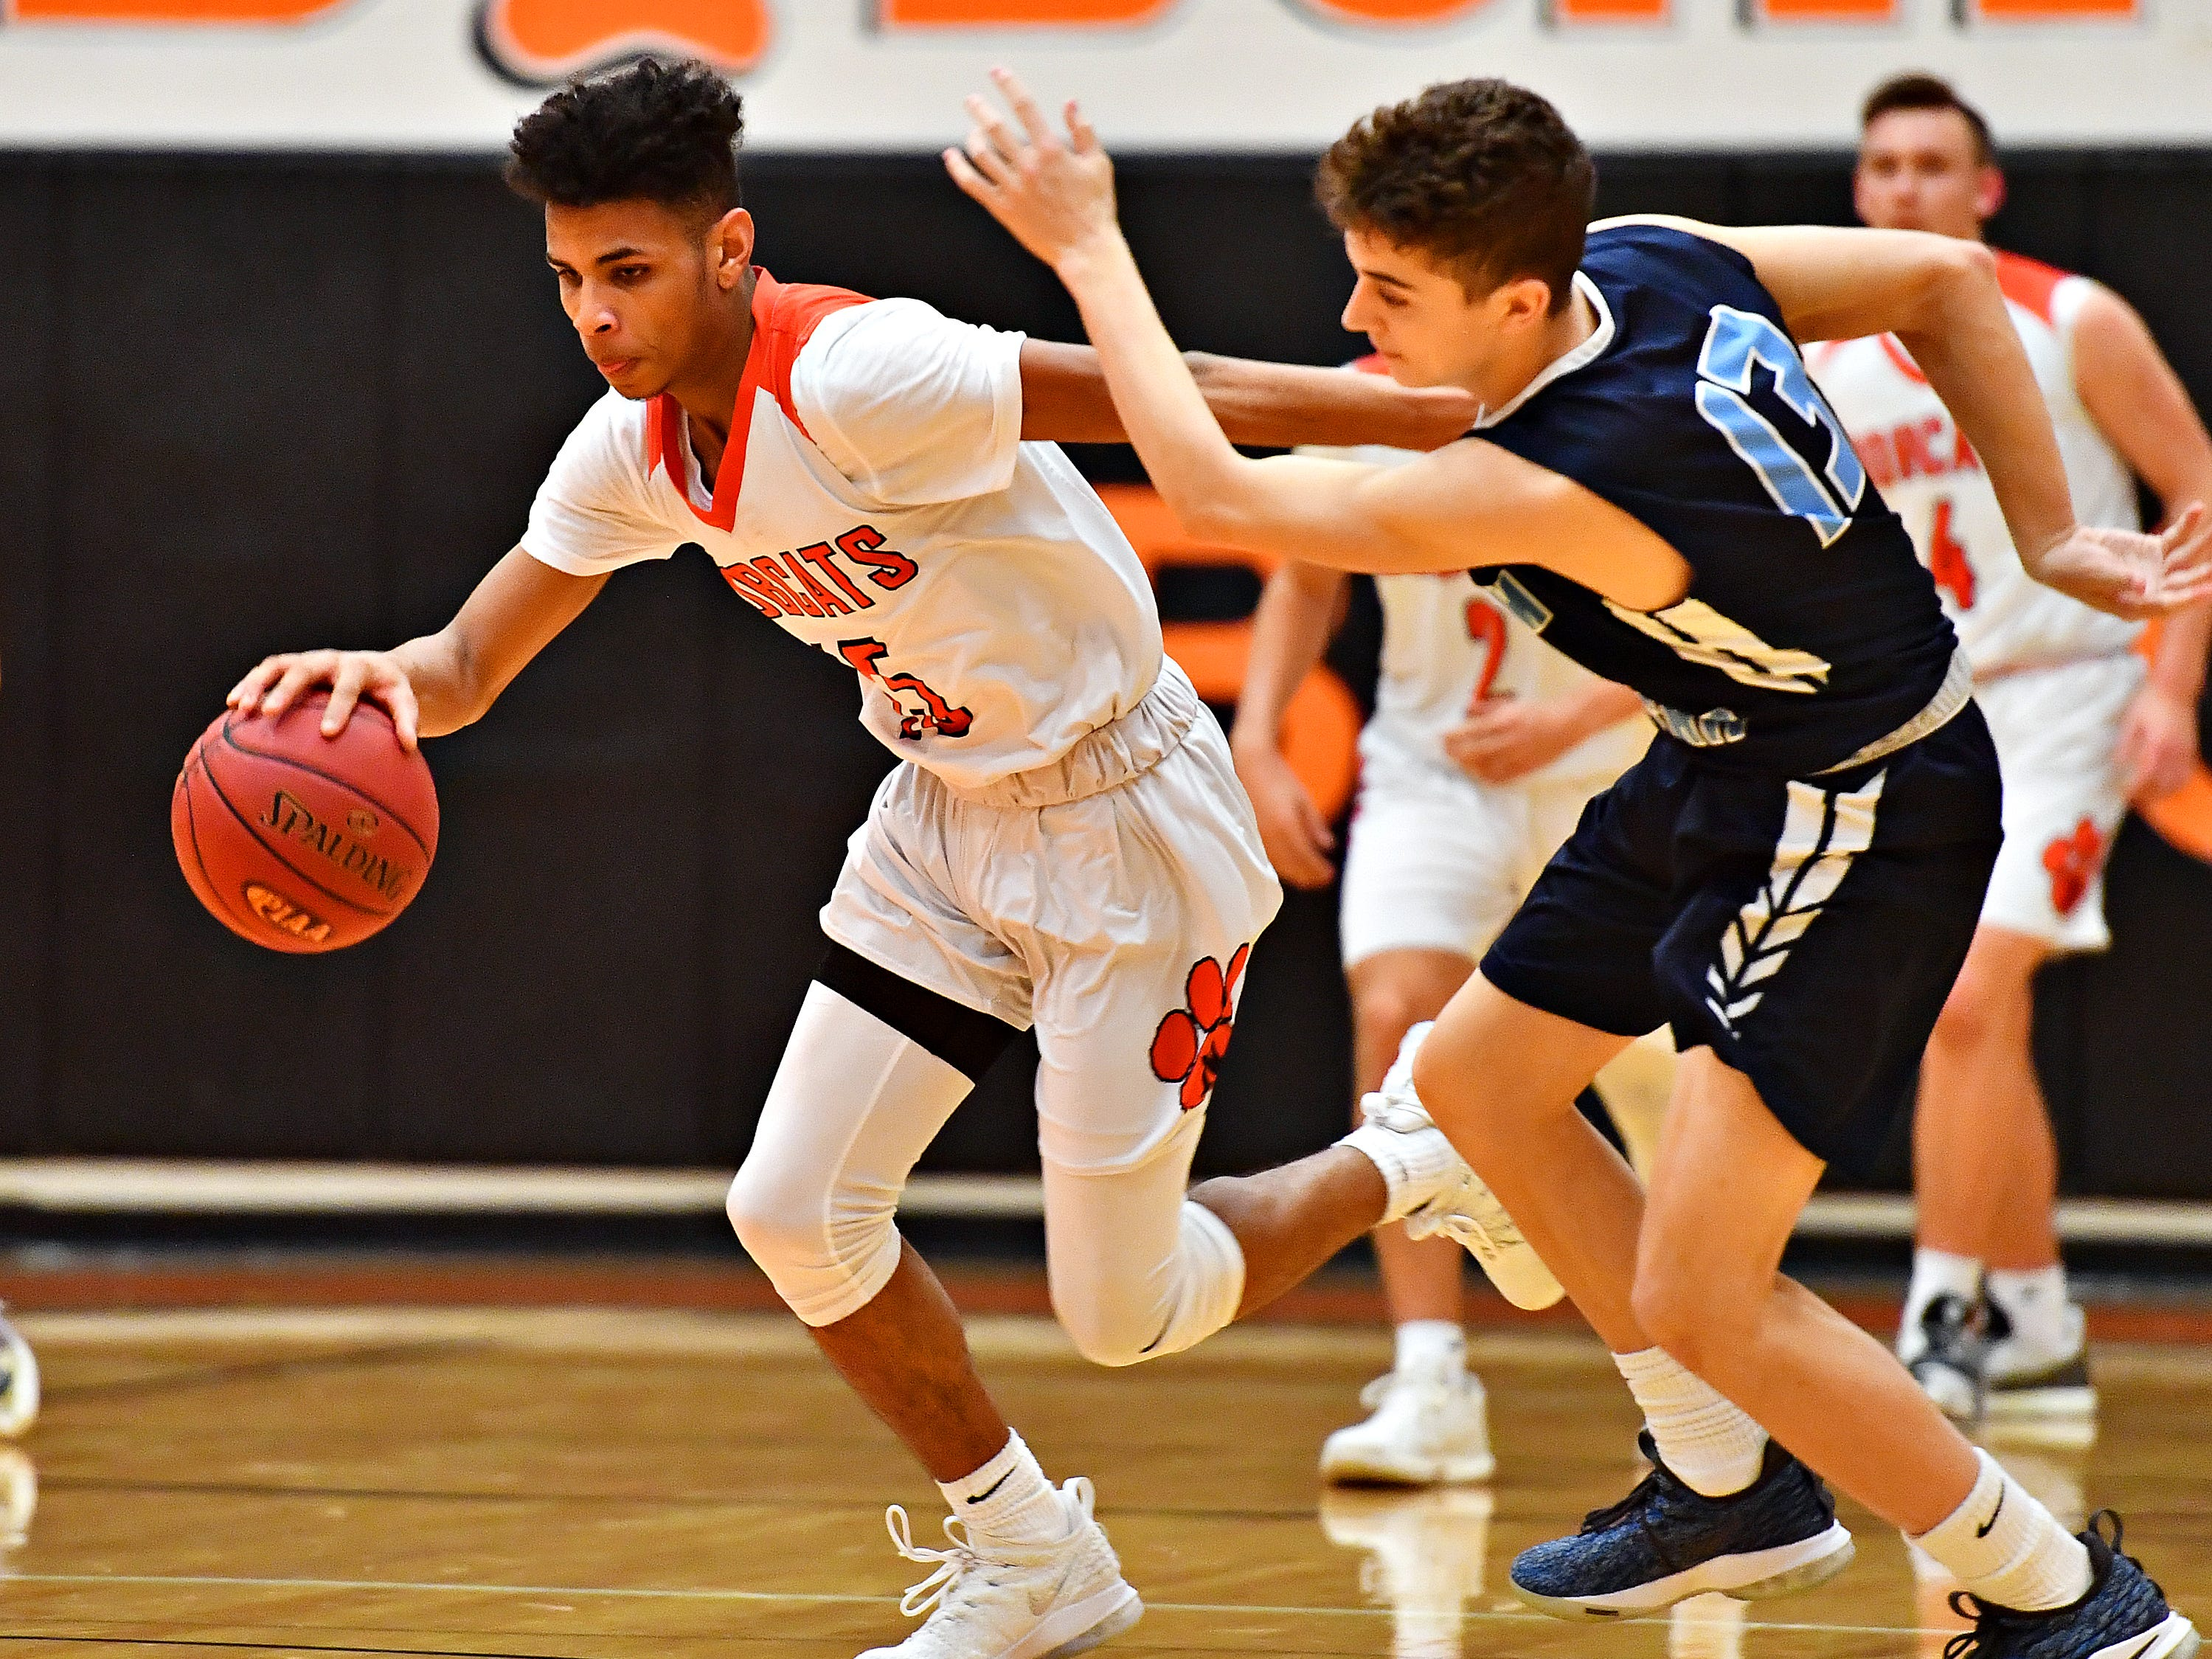 Manheim Township vs Northeastern during basketball action at Northeastern Senior High School in Manchester, Wednesday, Jan. 9, 2019. Northeastern would win the game 47-46. Dawn J. Sagert photo